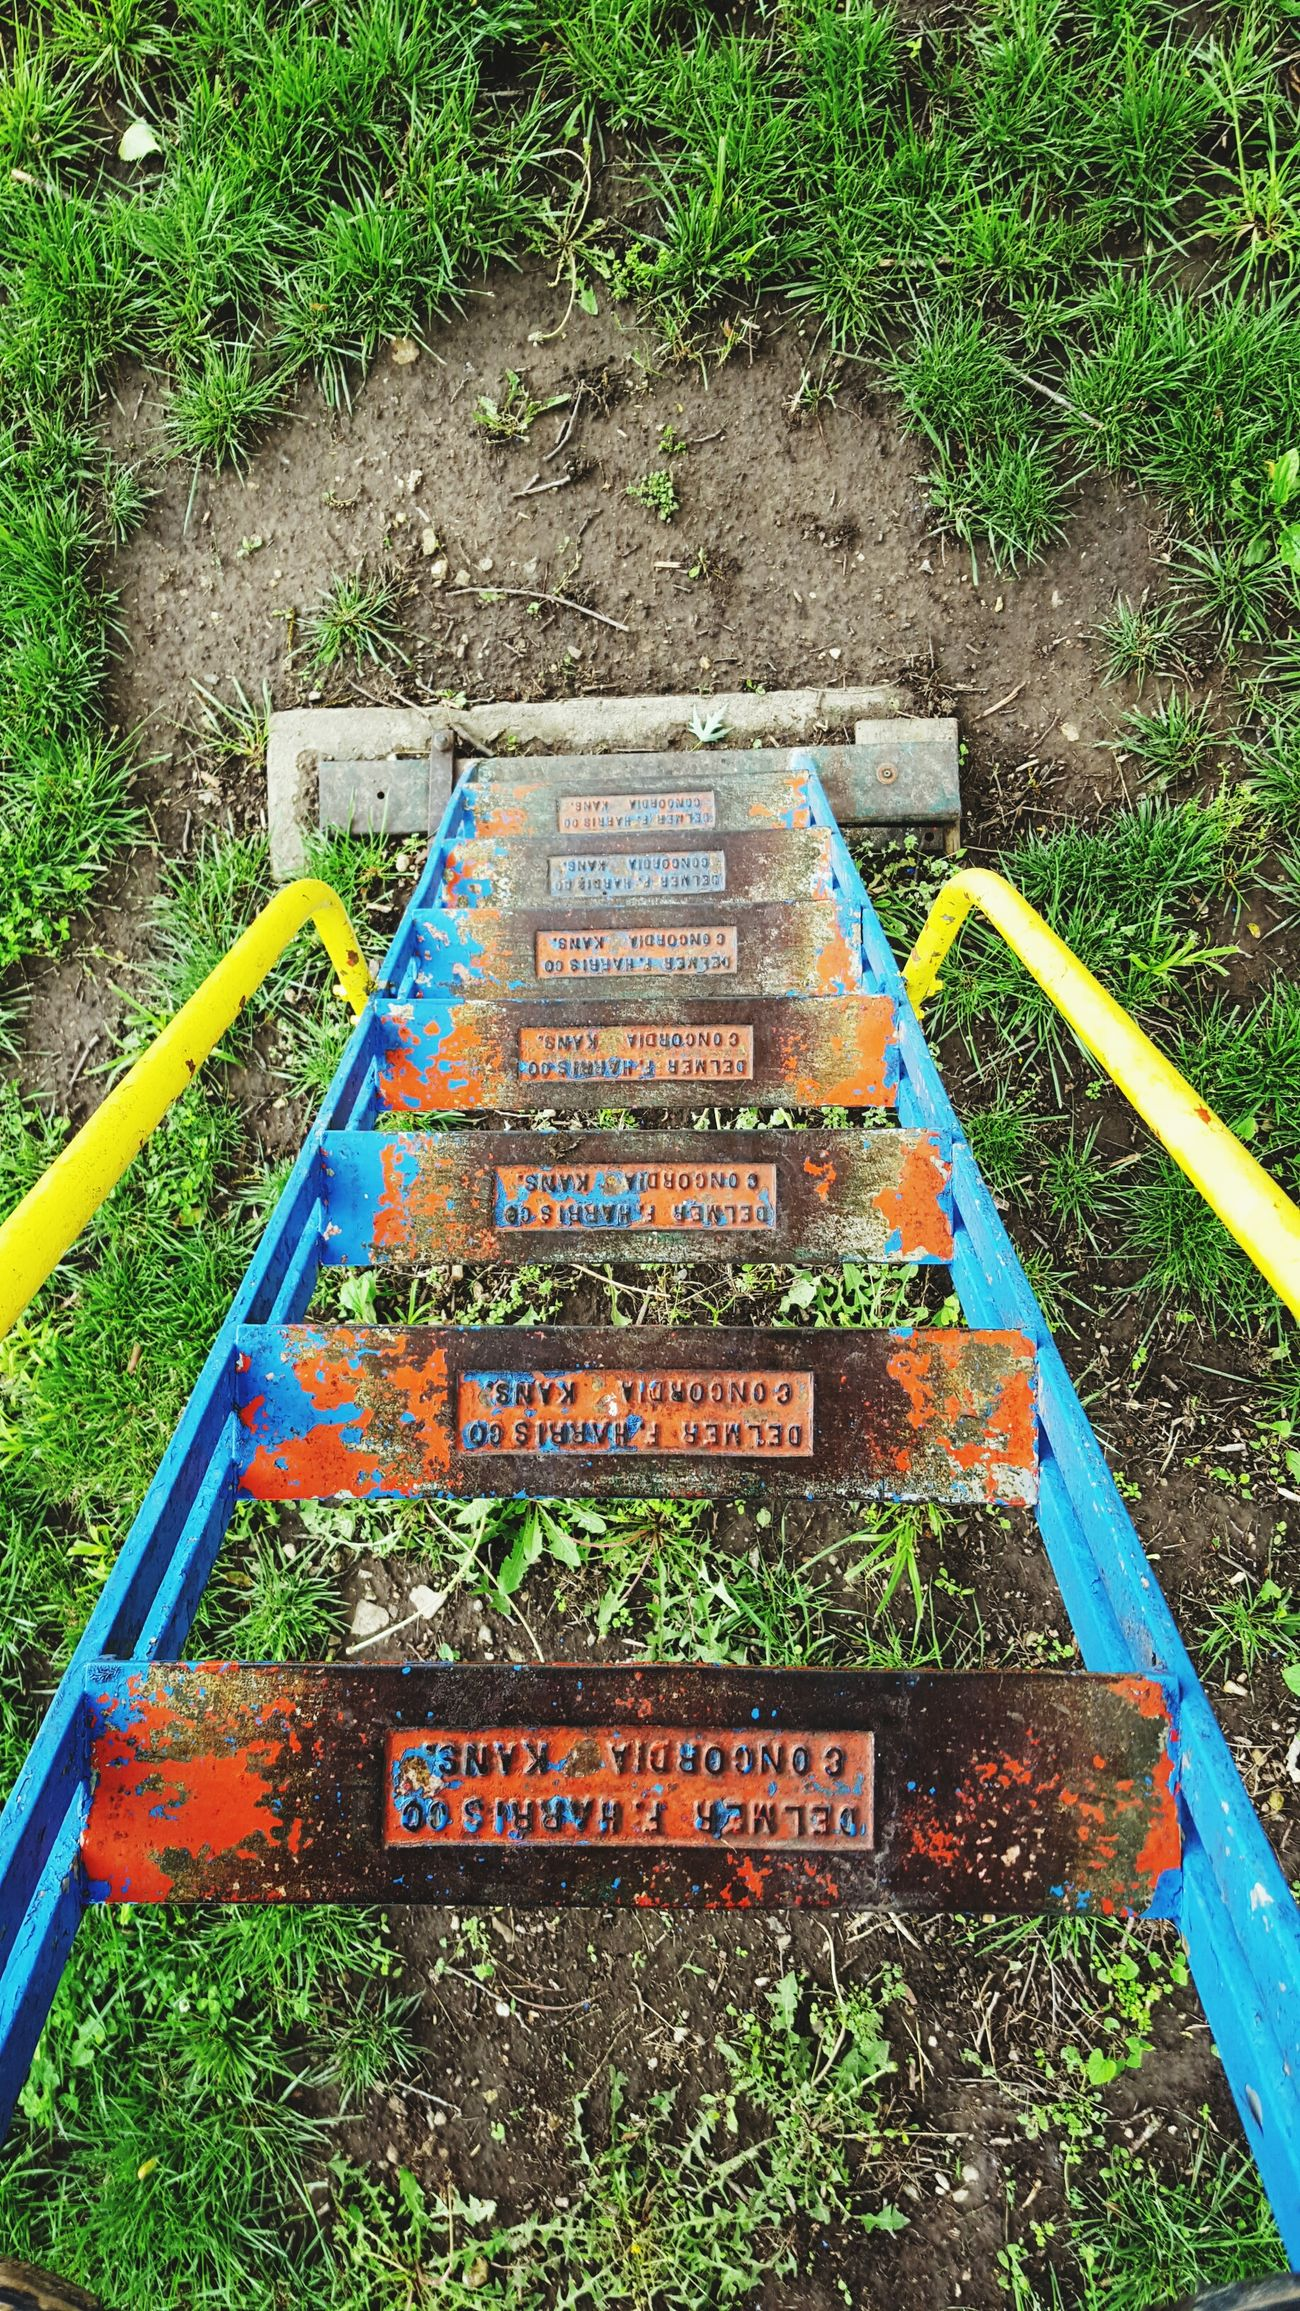 Slide Metal Rust Rusty Rusty Things Rusty Metal Rusty Goodness RustyLicious Rustygoodness Playground Playground Equipment The Past Steps Steps And Staircases Steps And Stairs Colorful Play Playing Playtime Playgrounds Vintage Old Steep Handrails Taking A Break